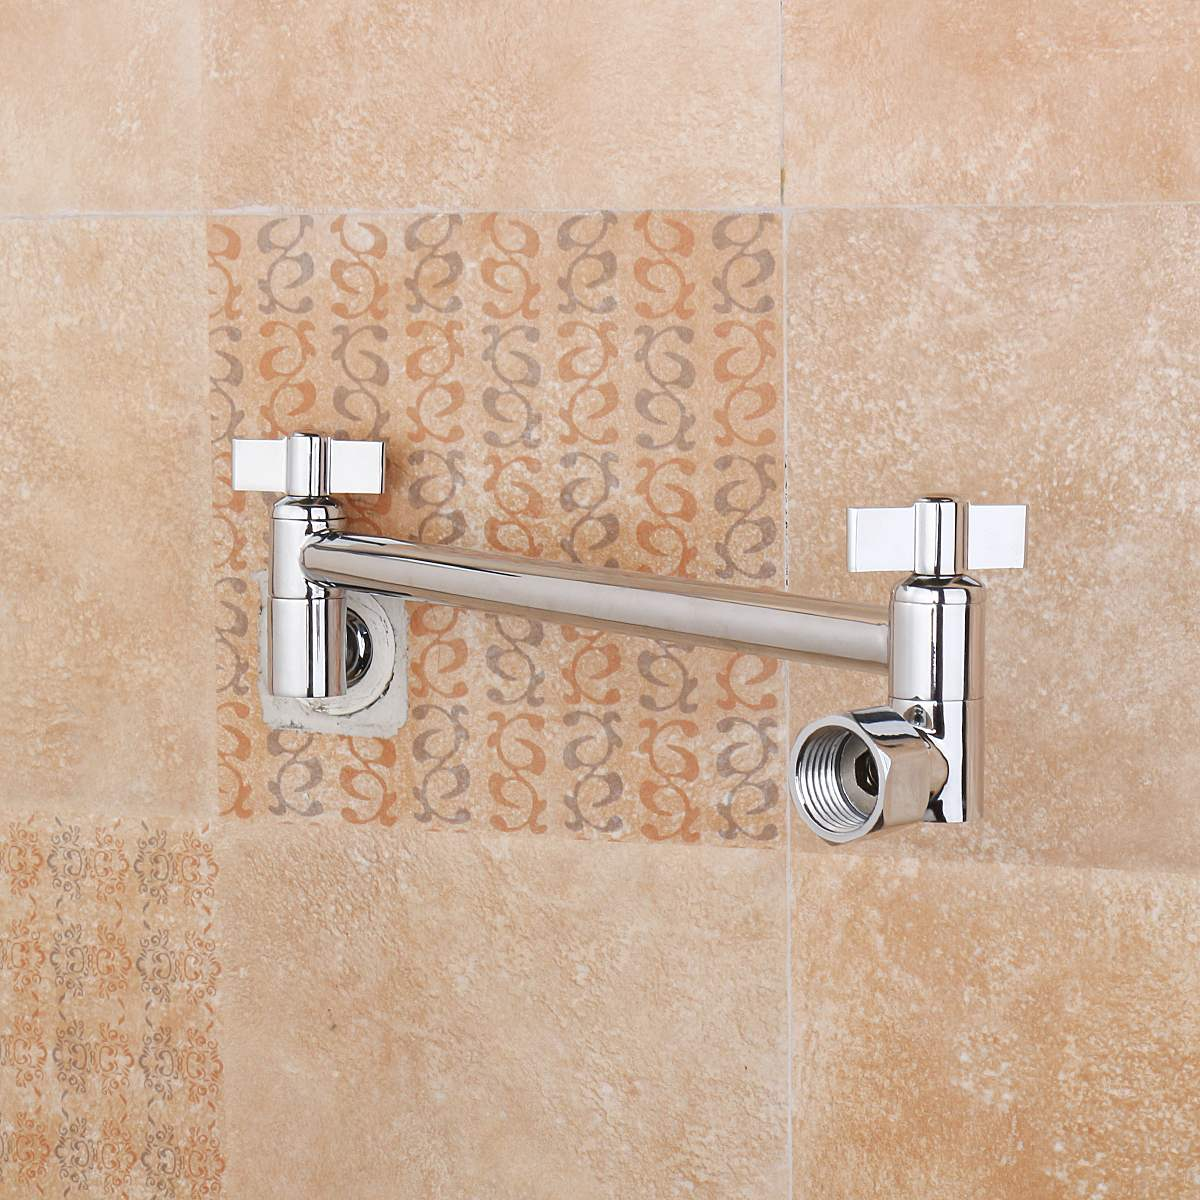 9 inch brass chrome shower head adjustable height arm wall mount extension shower arms bathroom fixture - Shower Arm Extension